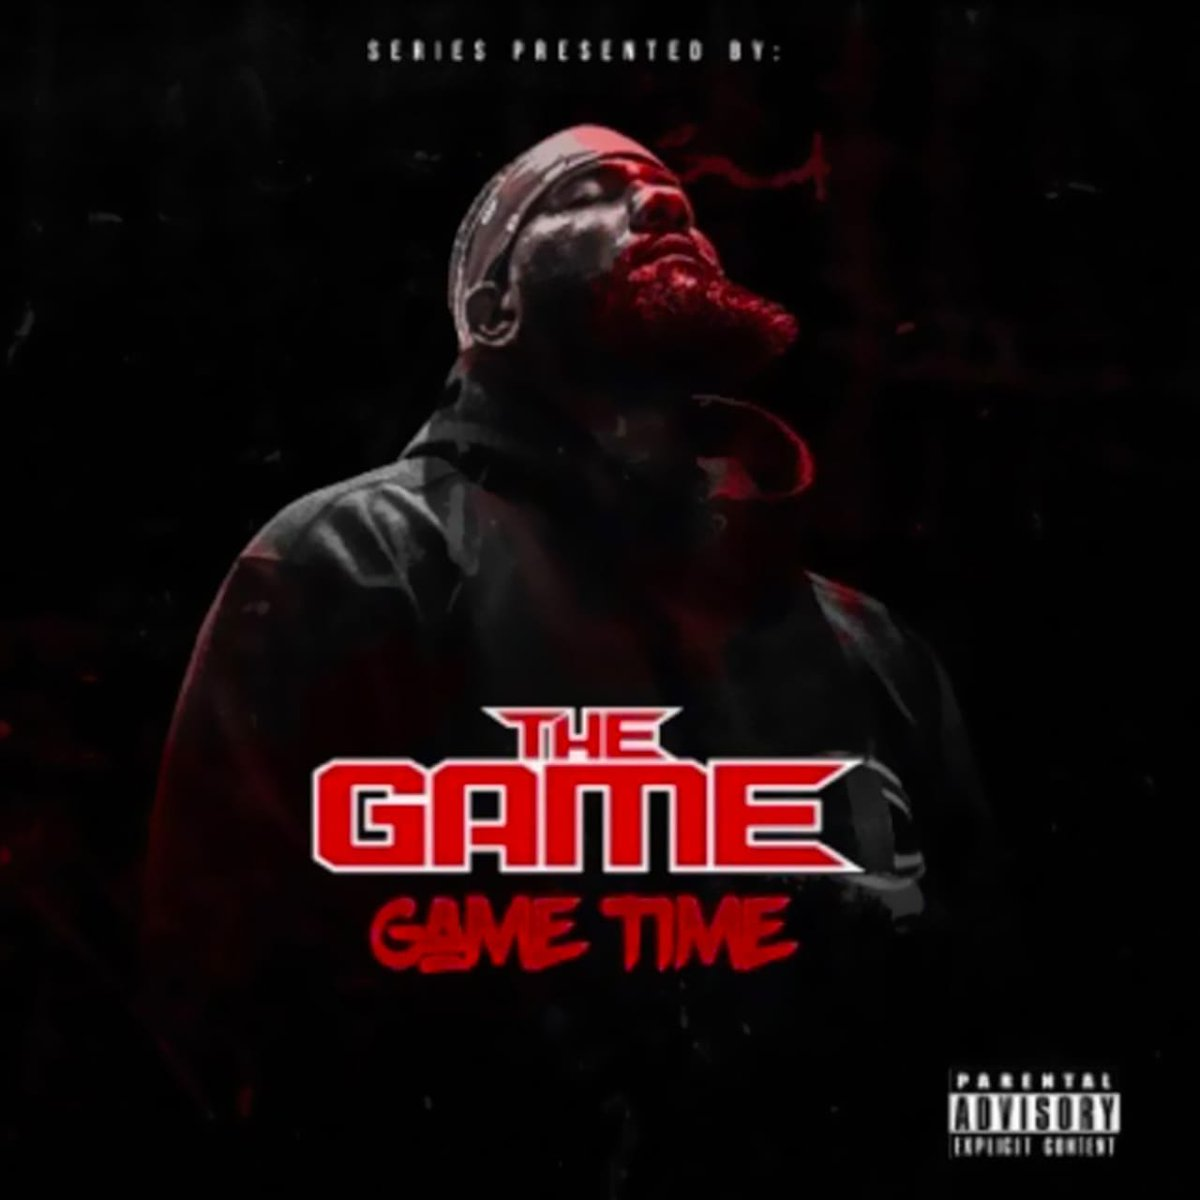 We are happy to announce that @JMalone59766247 will be featured on The Game's upcoming mixtape titled #GameTime The song is titled #FaithInUs. The mixtape is set to be released in August 2020. 🔥🔥🔥 #sheerpublishing #music #Africa #southafrica #africaisawesome #international https://t.co/vlZ18iWPu0